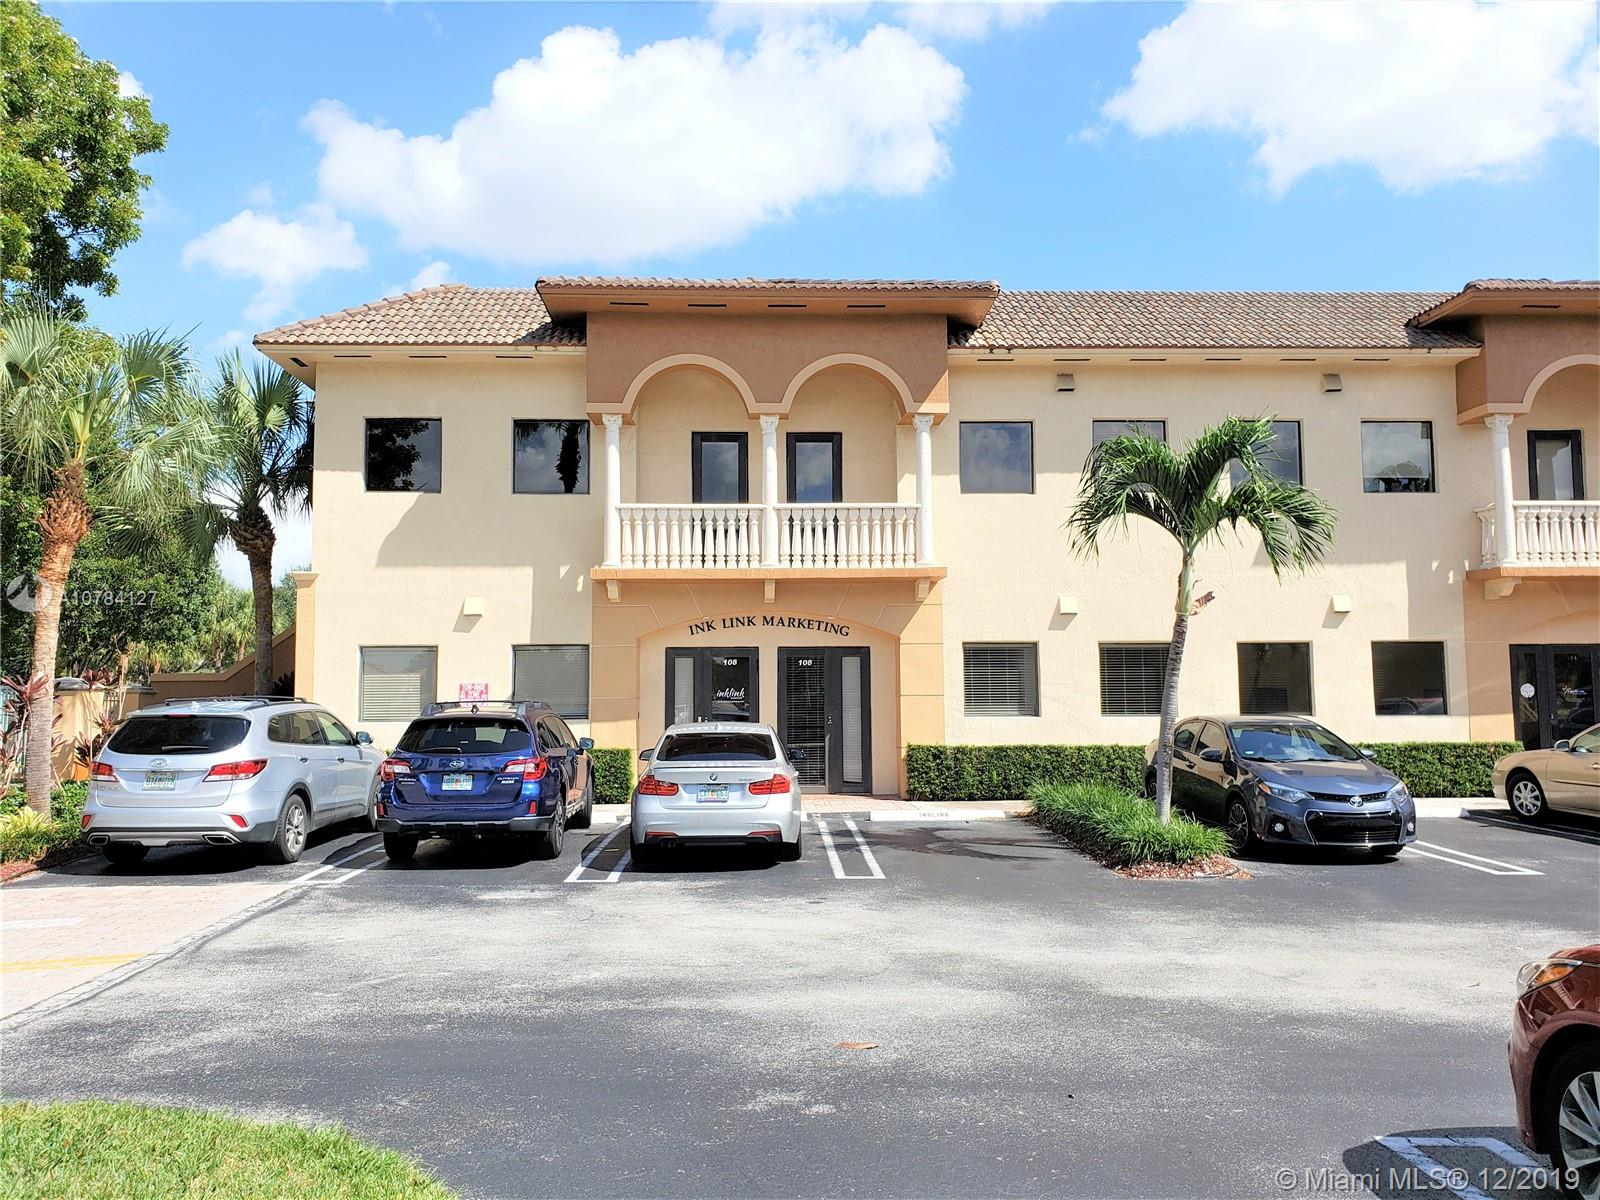 7950 NW 155th St 108, Miami Lakes, FL 33016